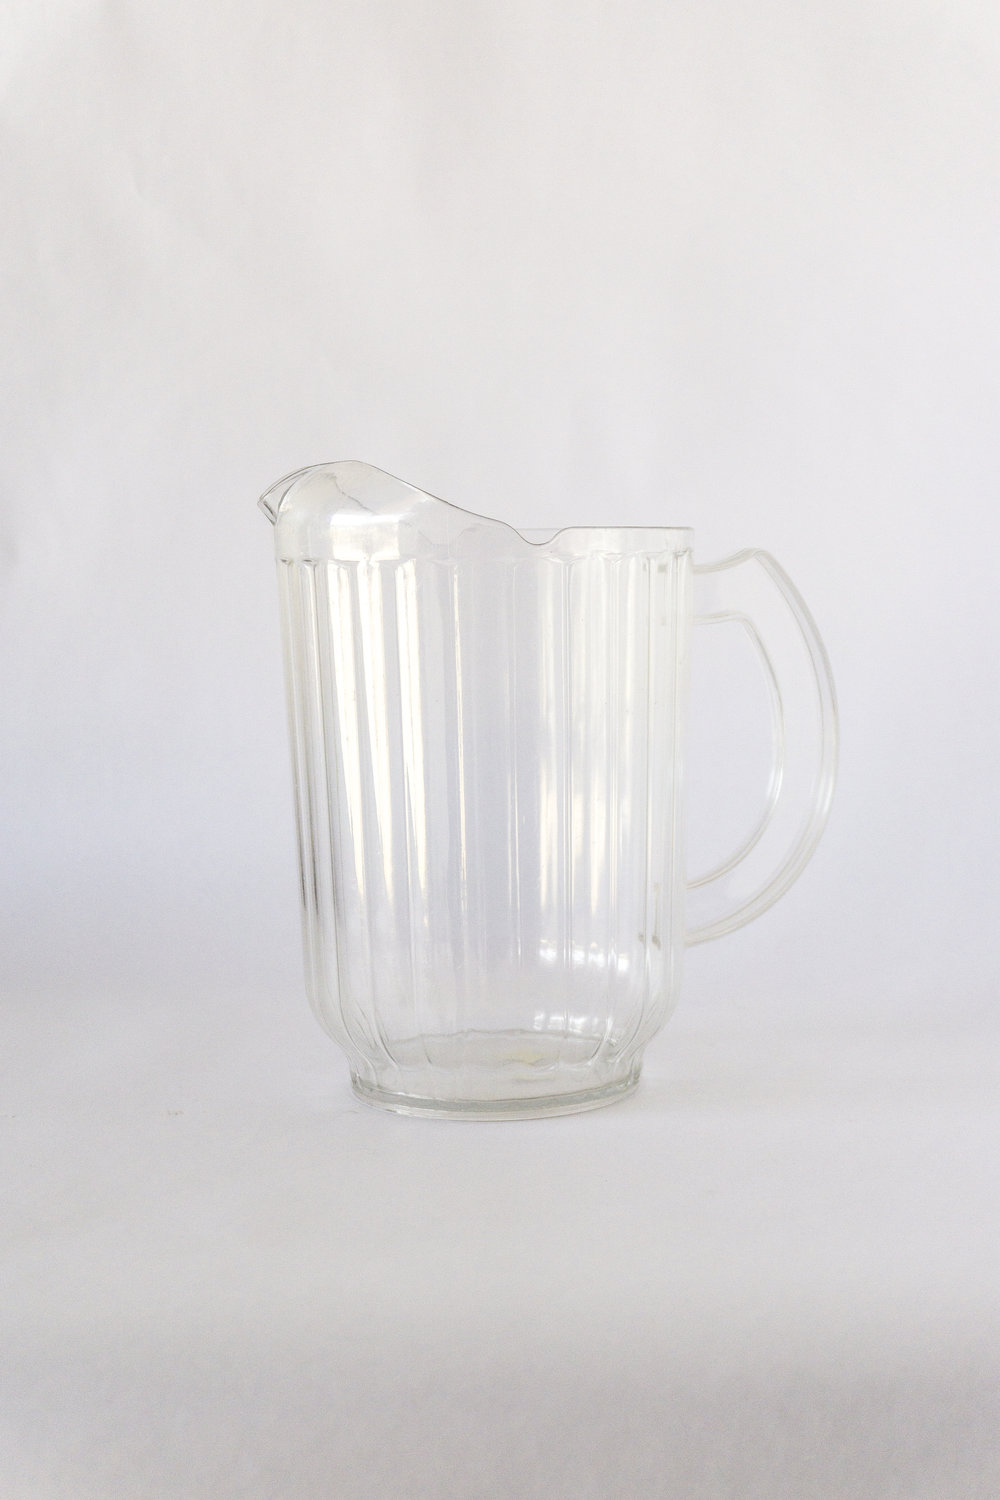 Clear Plastic Water Pitcher  48 oz  $2.00